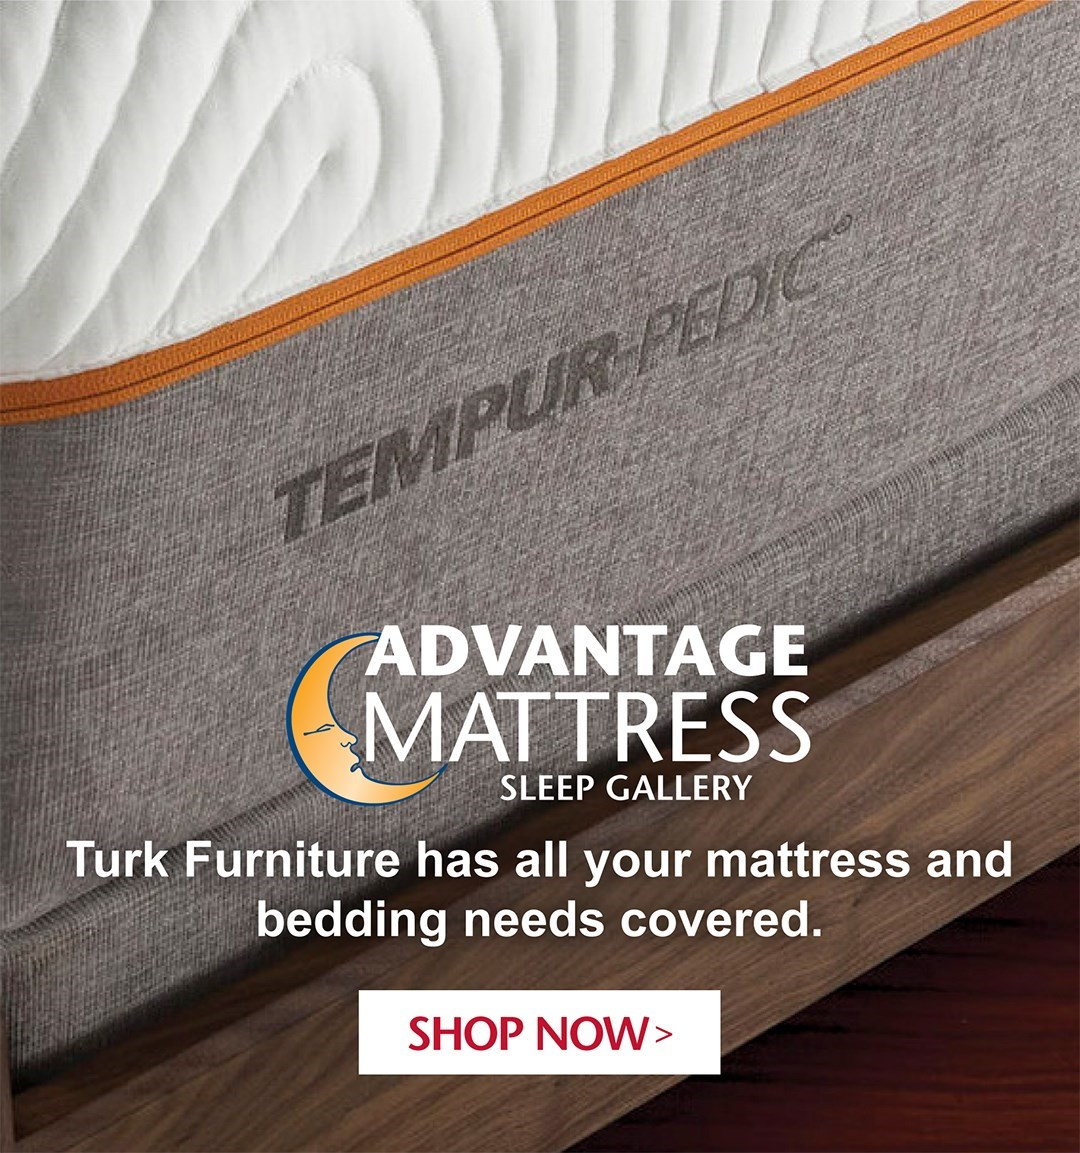 Advantage Mattress